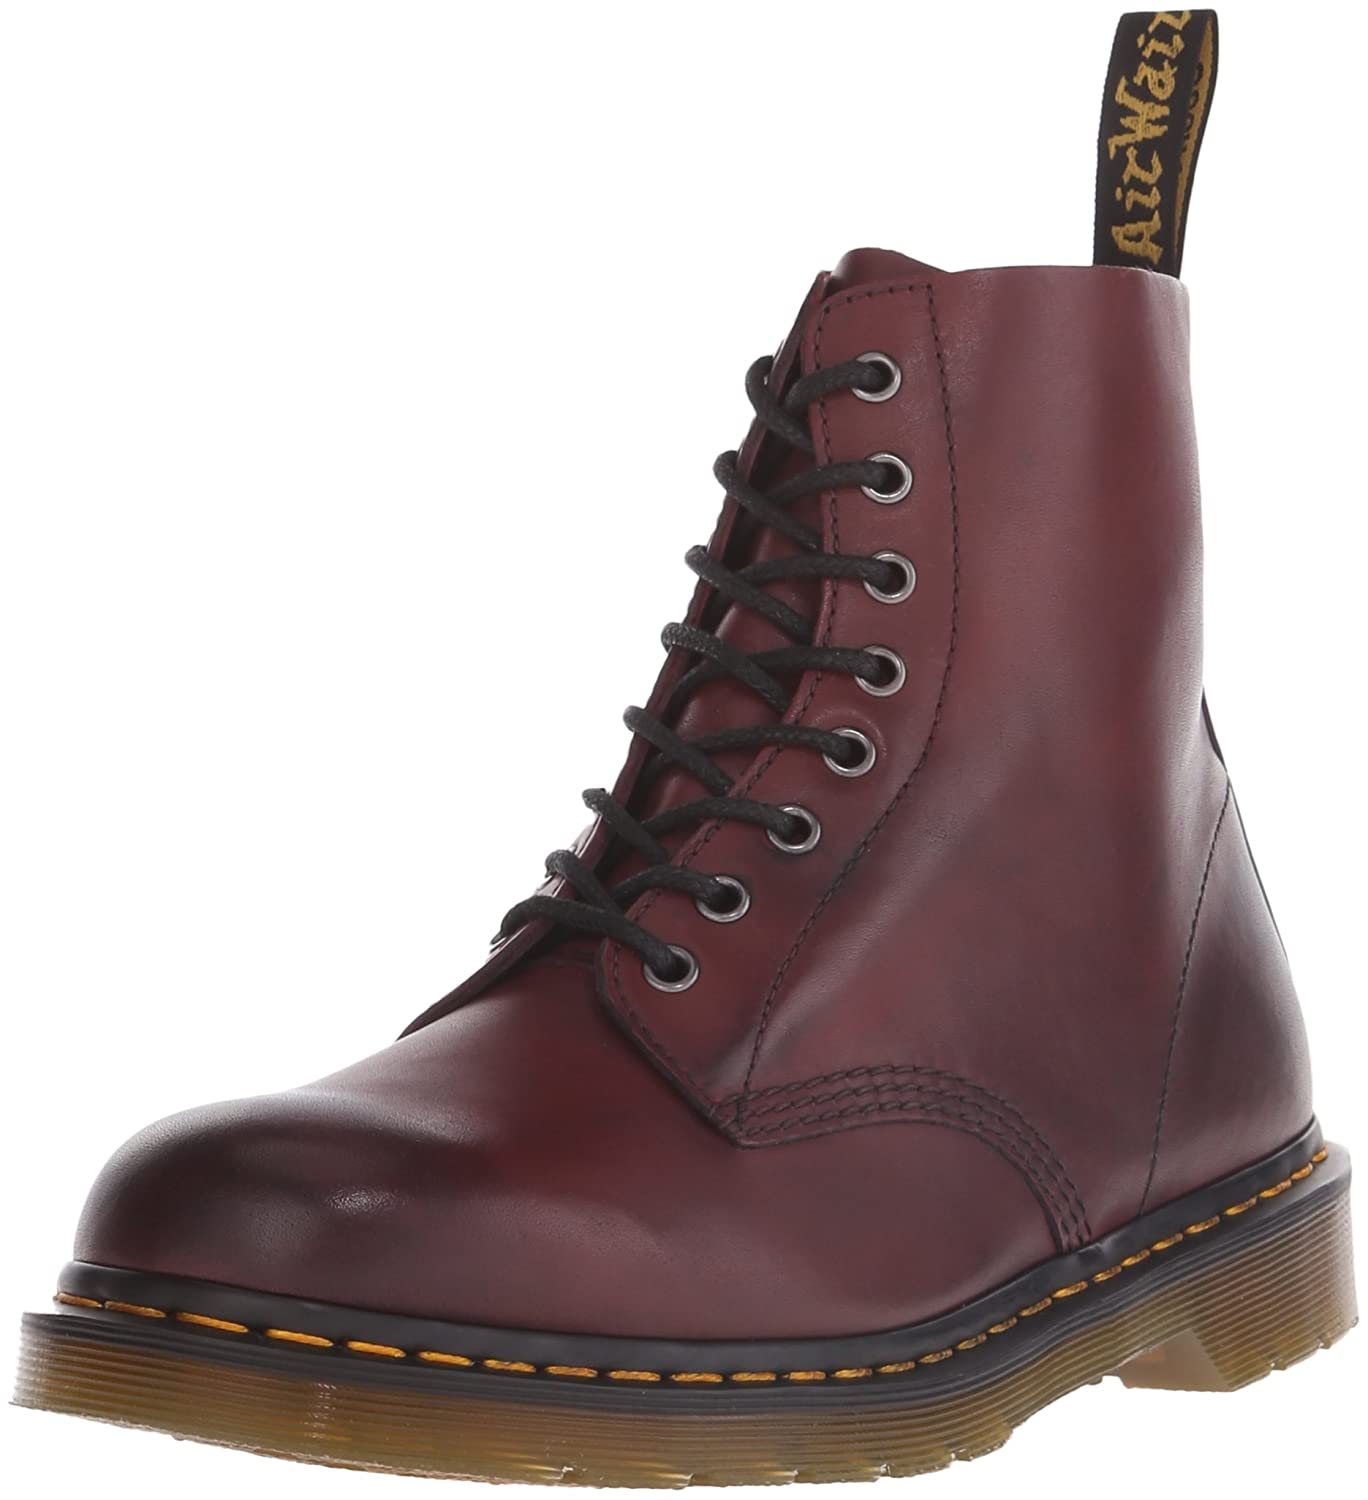 Dr. Martens Women's Pascal Leather Combat Boot B00IJNKQNQ 5 M US|Cherry Red Virginia Leather